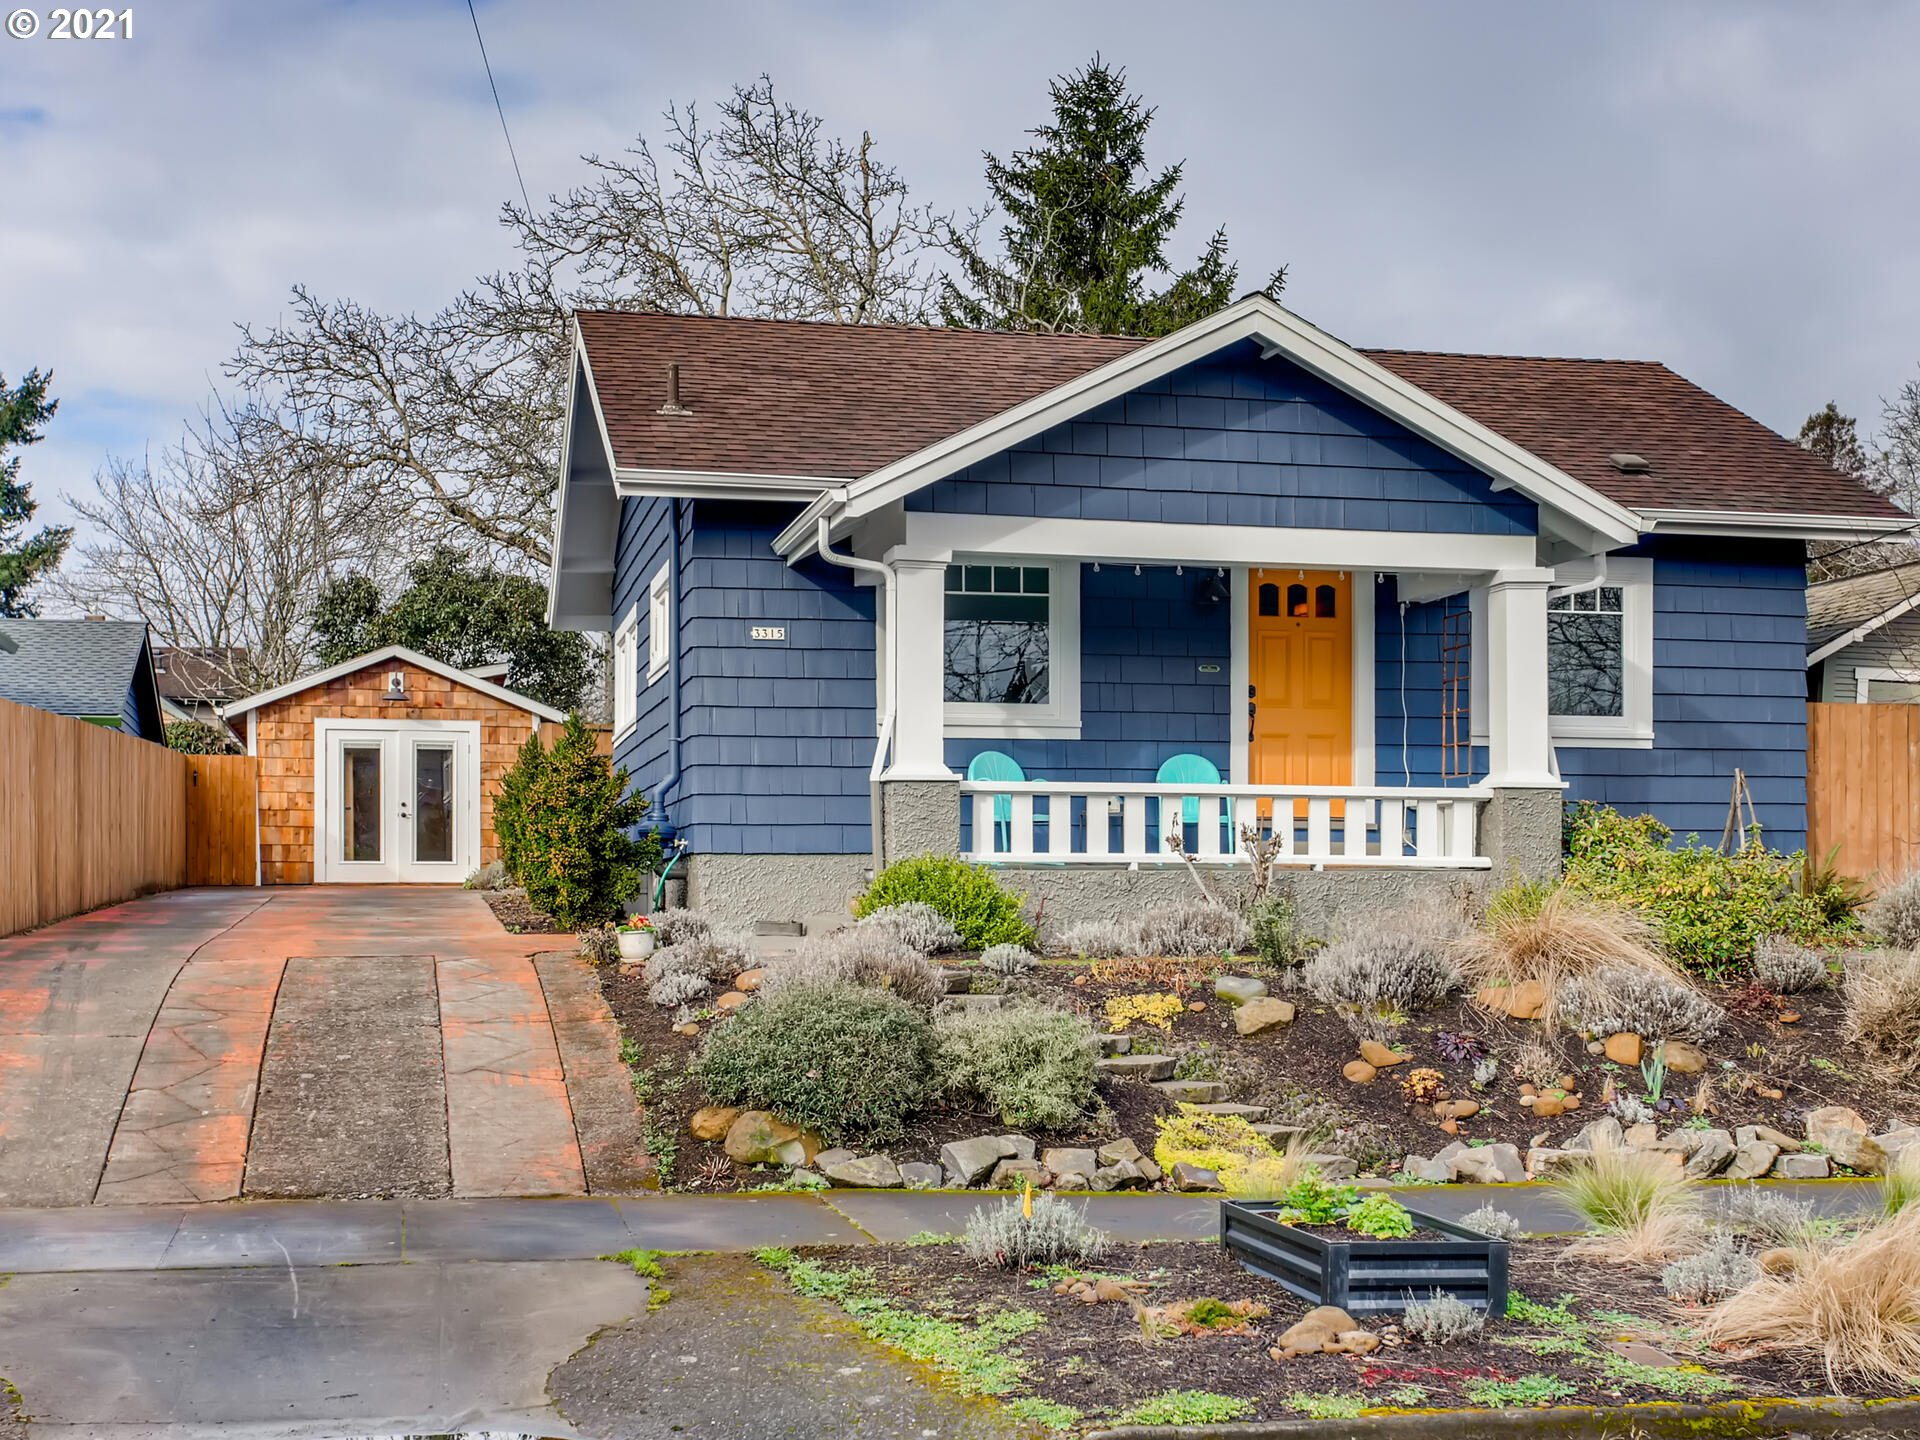 Enchanting Roseway Bungalow is a true GEM...EVERY surface has been touched & many systems updated.All new wiring + elec. panel,New plumbing,Radon,Roof(2012)DEQ cert oil tank,Radon Sys.Sunny & adorable w/great layout & timeless finishes. Addt'l 216 sqft in garage studio space:WFHoffic,gym,or?West-facing backyard.Perennials galore,Dogwood,Japanese Maple,berries,& fruit trees.Walkable to fun Sandy attractions,Glenhaven,& along the Rose City golf course.On a bike greenway!Fully insulated:HES 6/10. [Home Energy Score = 6. HES Report at https://rpt.greenbuildingregistry.com/hes/OR10188930]